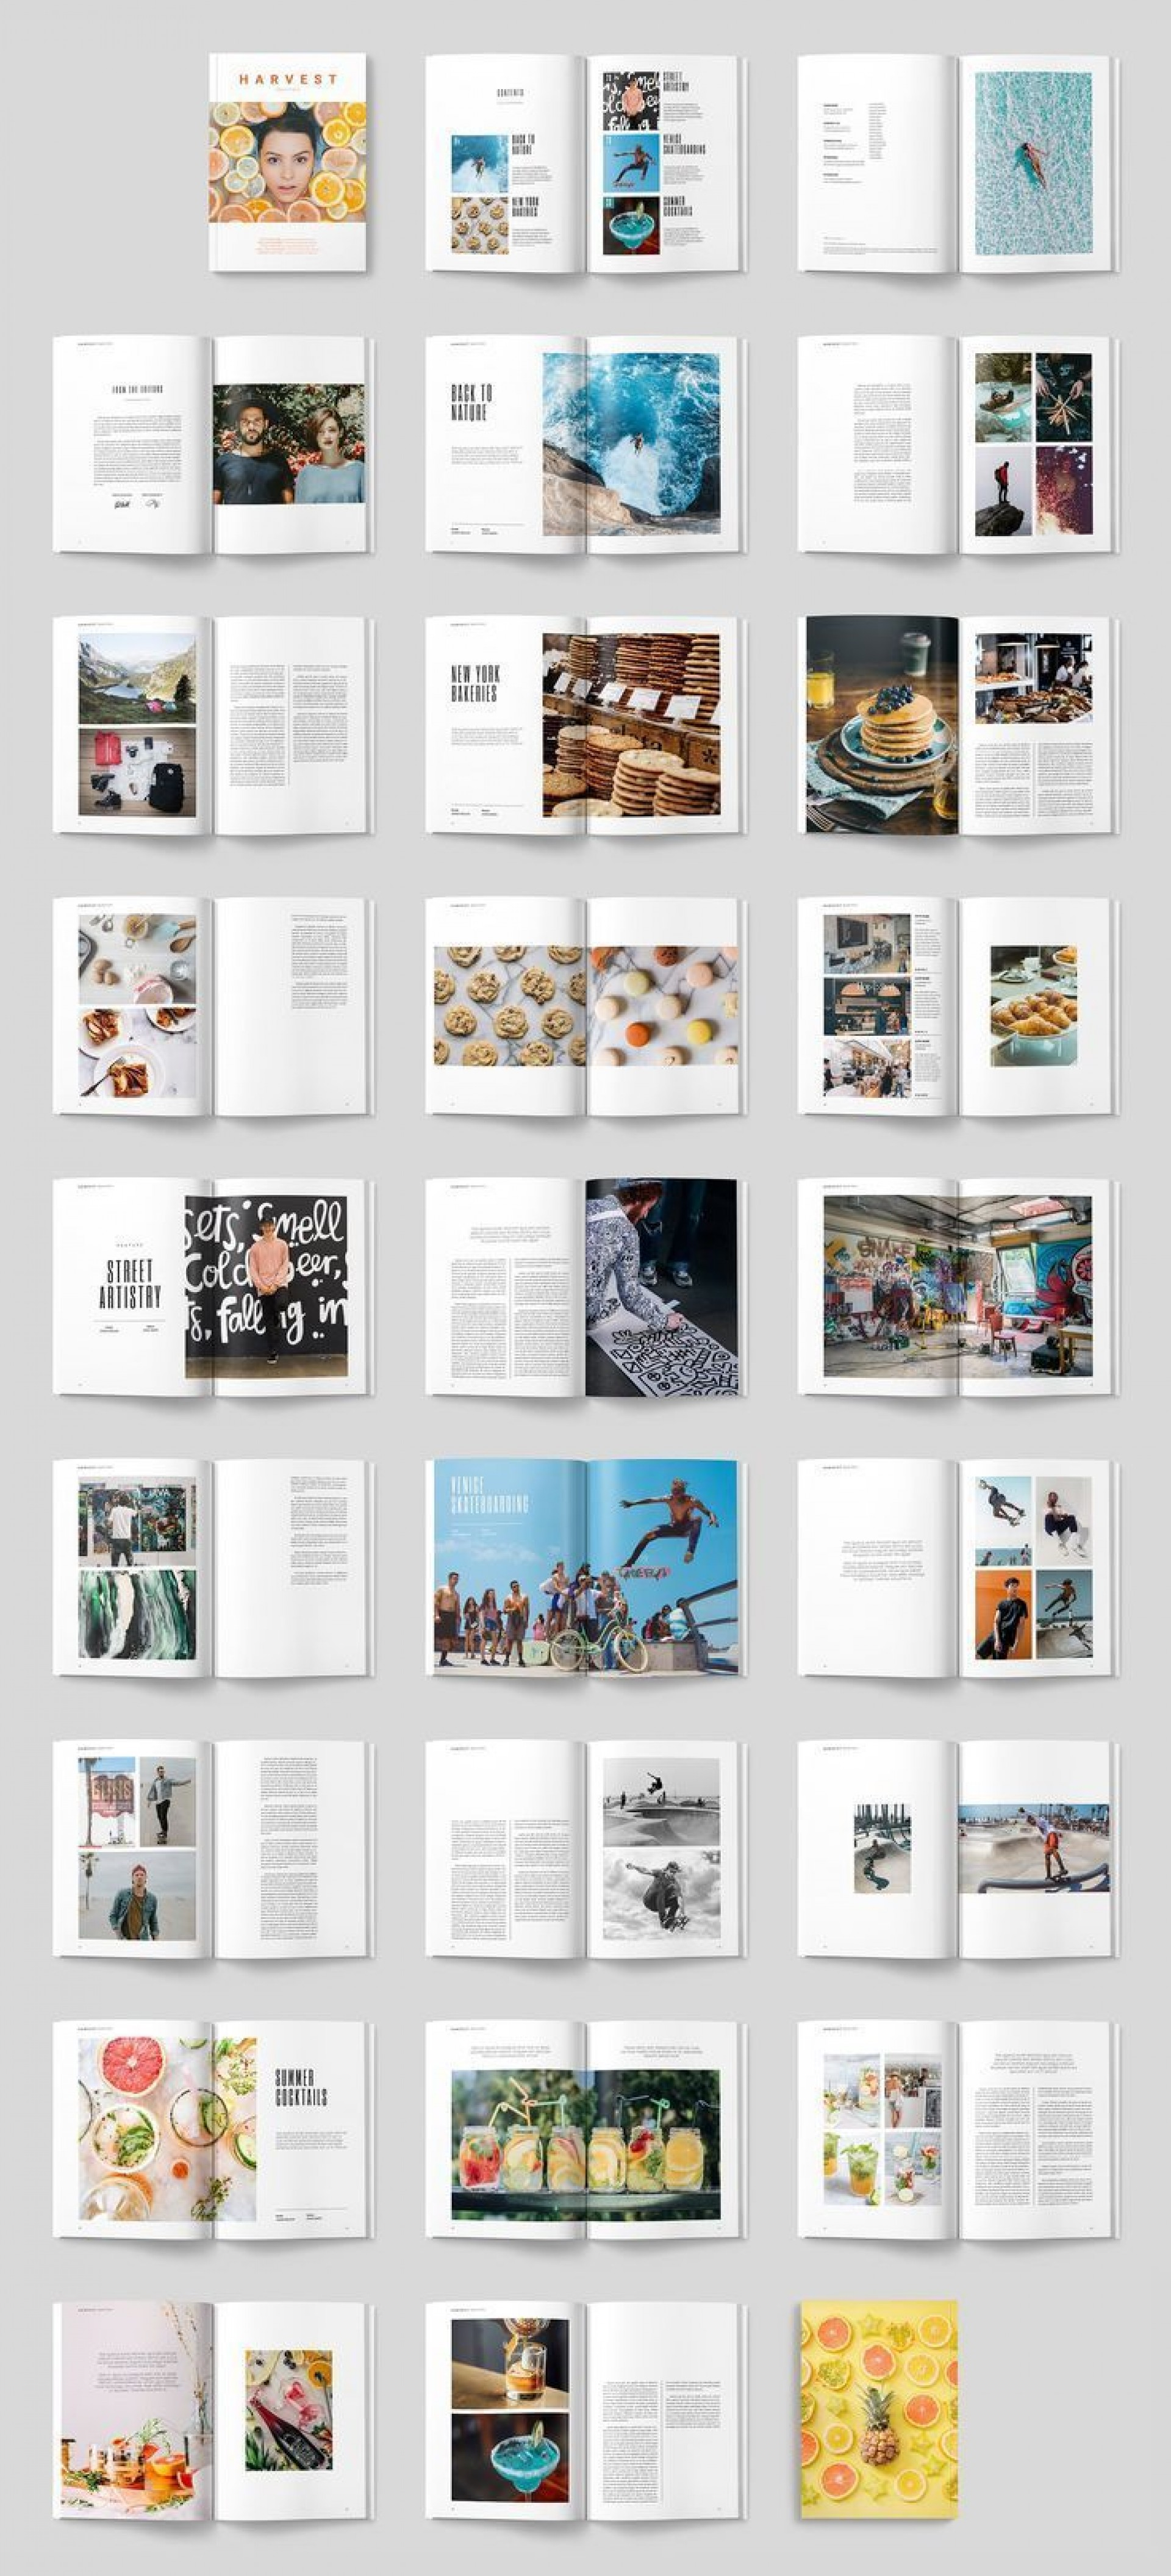 000 Magnificent Free Magazine Layout Template High Definition  Templates For Word Microsoft Powerpoint1920